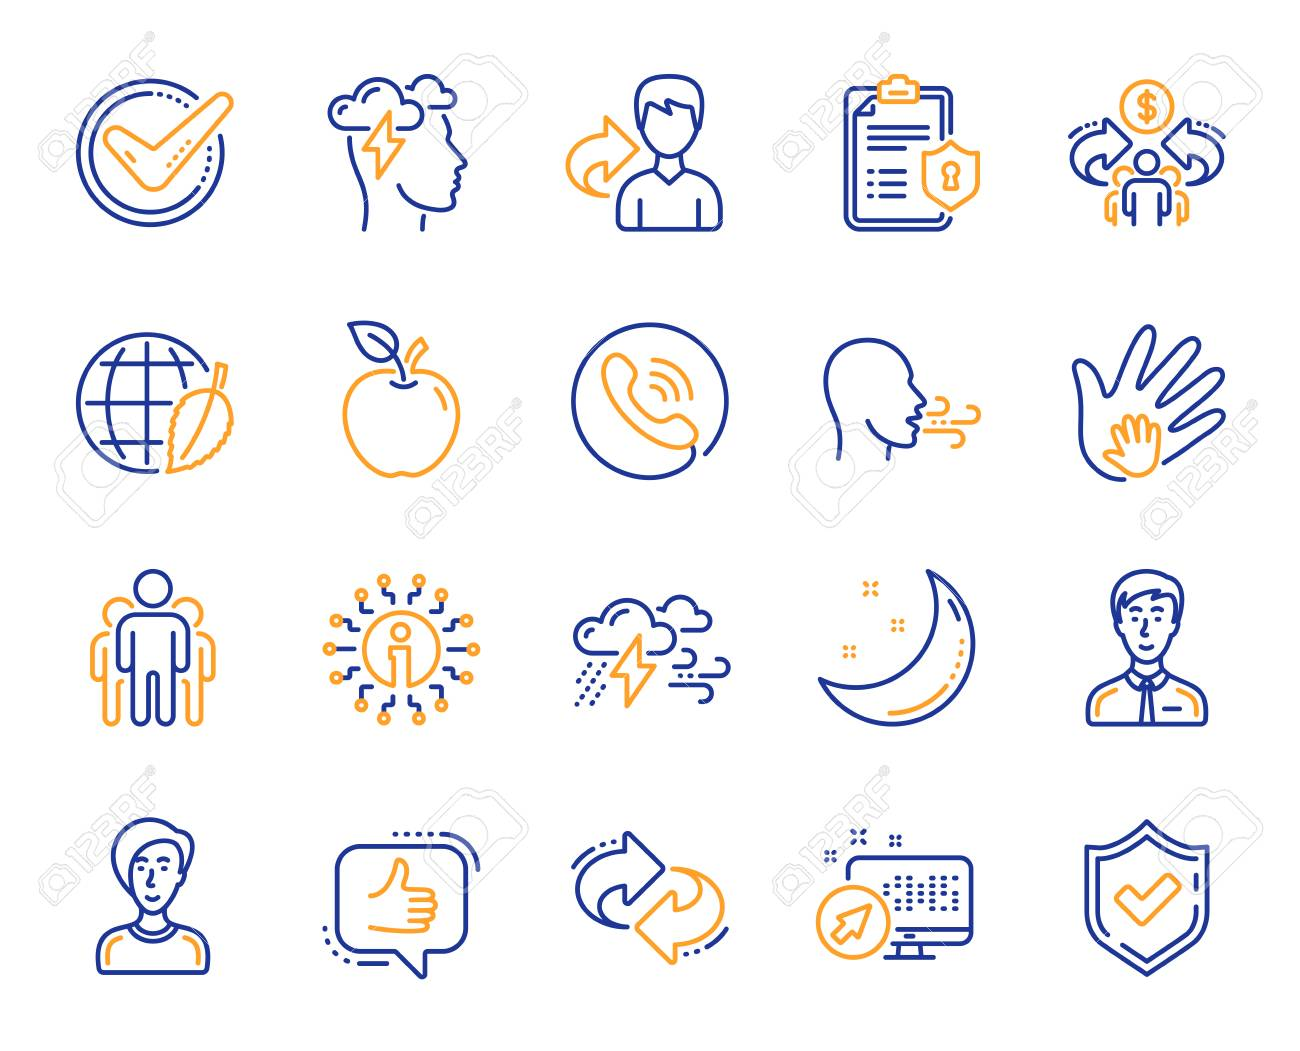 Check mark, Sharing economy and Mindfulness stress, Breath people line icons. Privacy Policy, Social Responsibility, Breath icons. Bad weather, Tick check mark, sharing refer, stress. Vector - 125985973